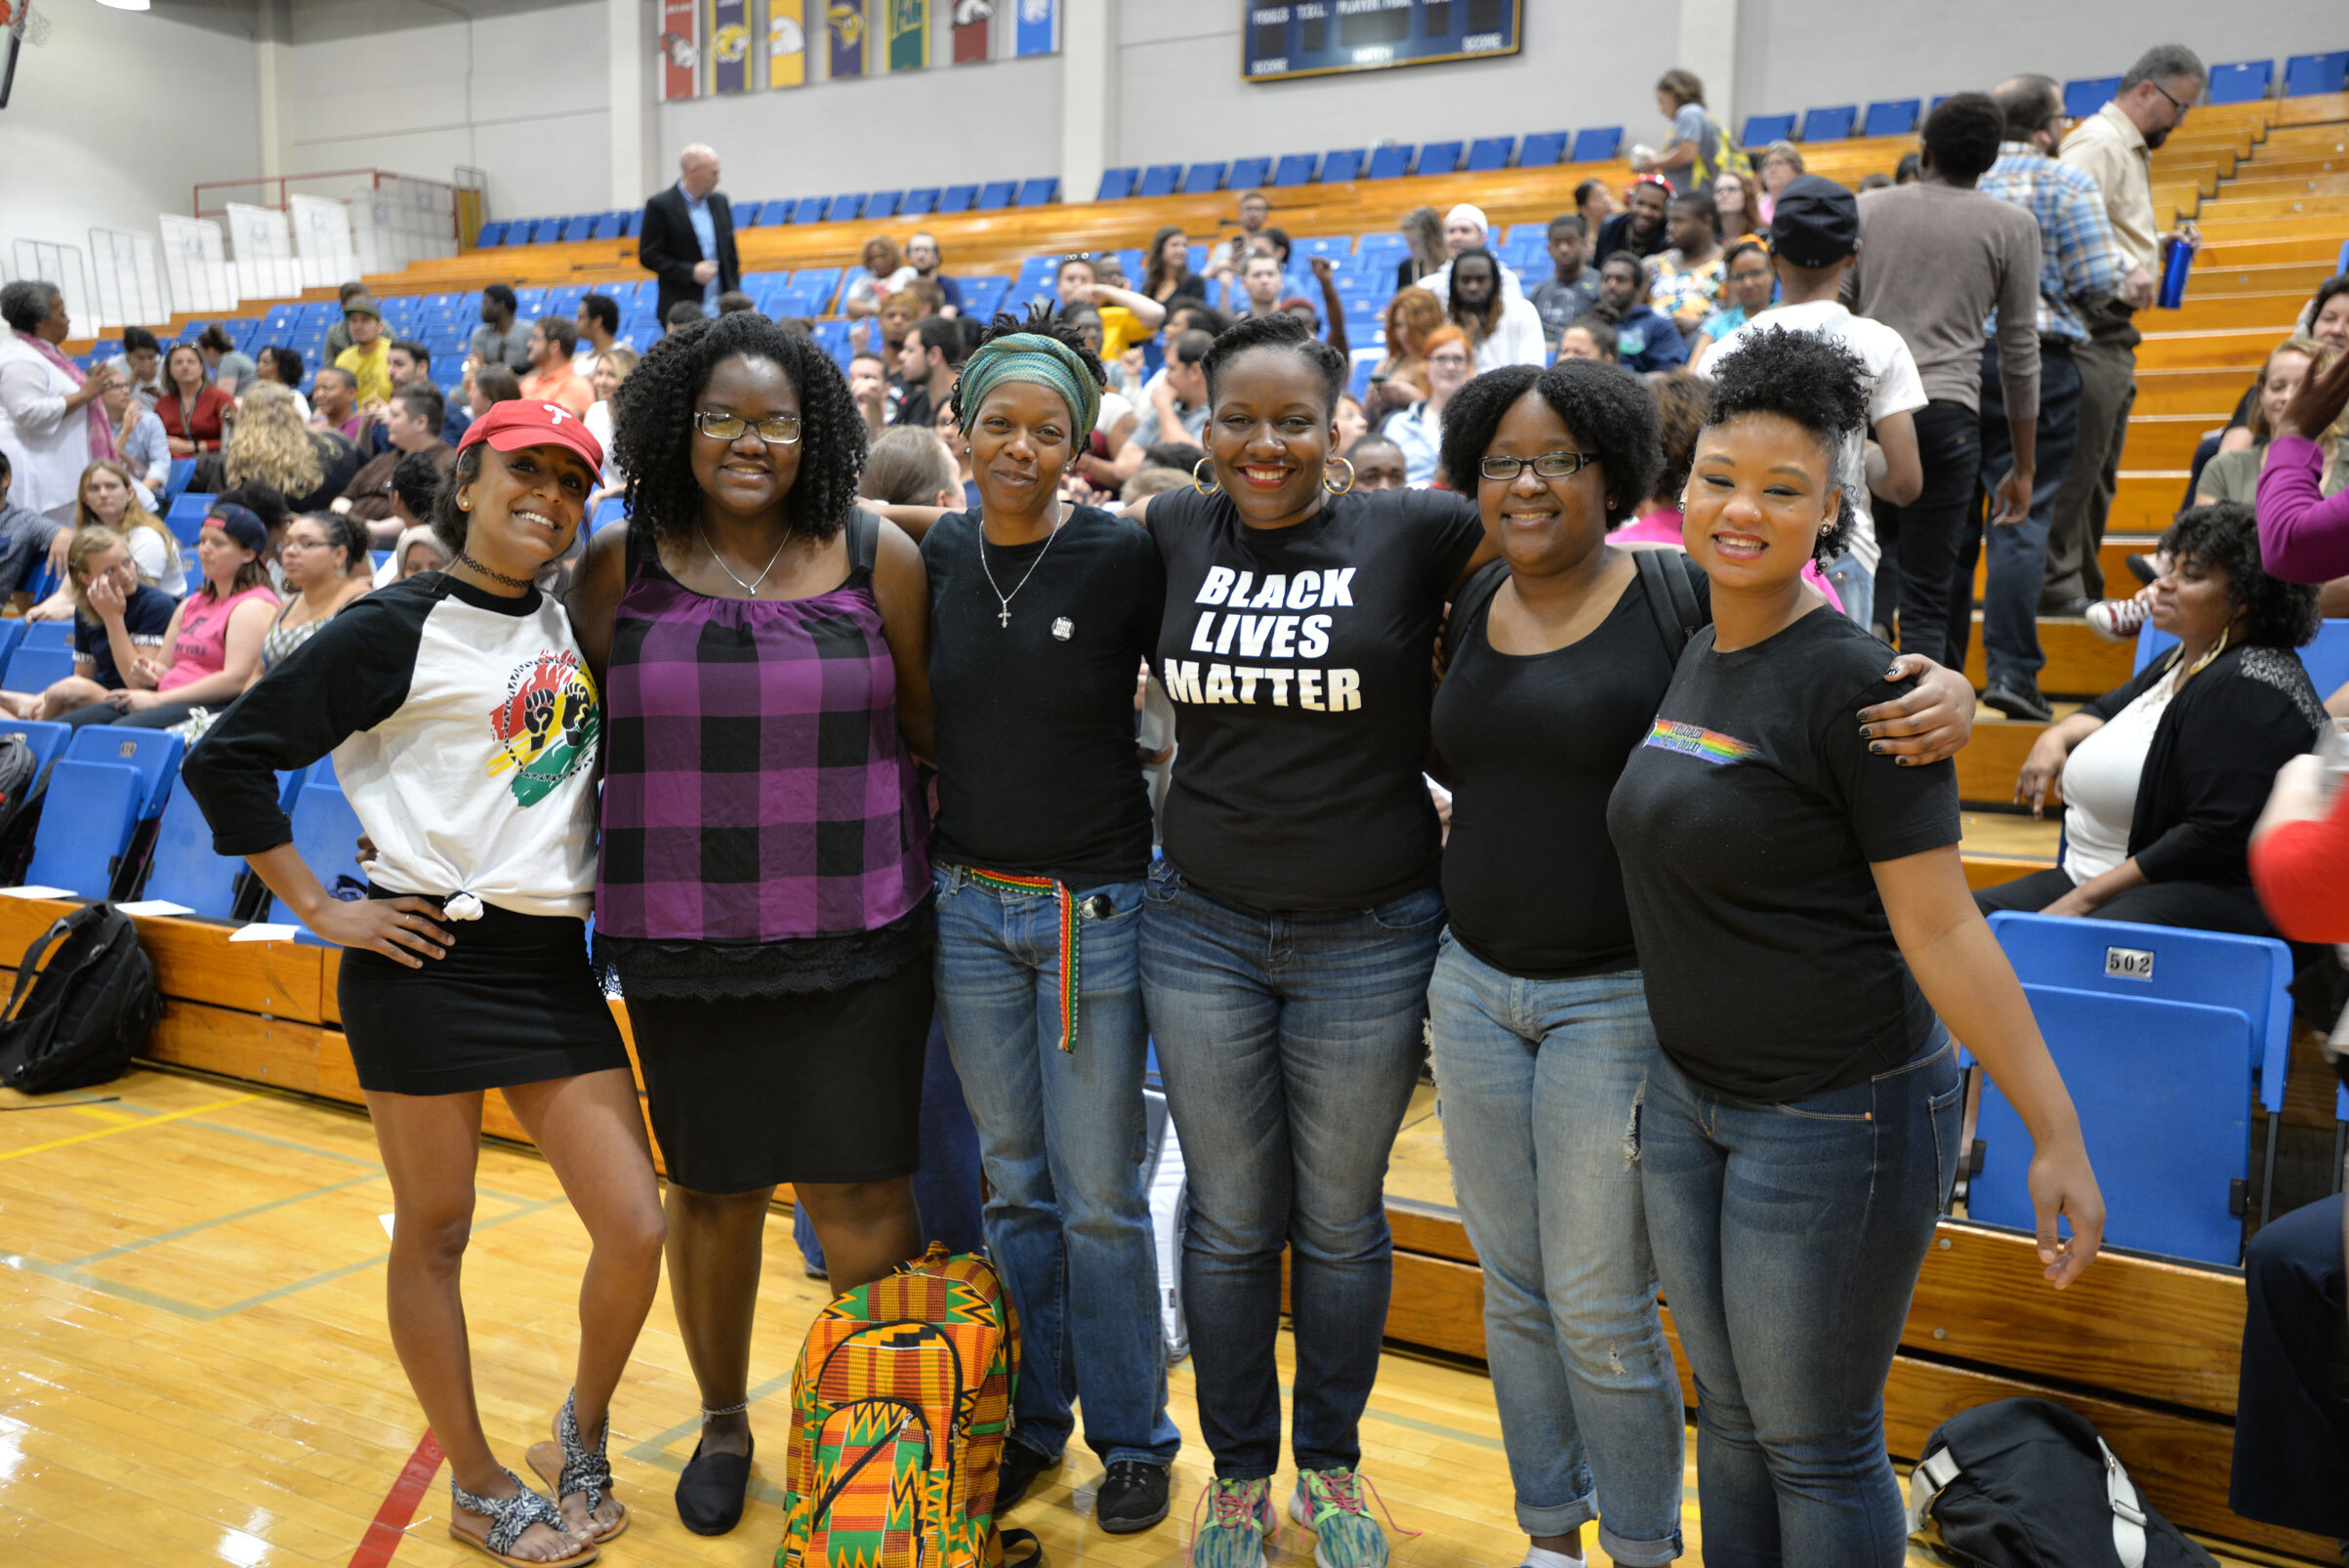 In front of blue-seated bleachers and brown steps, six women formed a u-shape hugging each other and smiling at the camera.